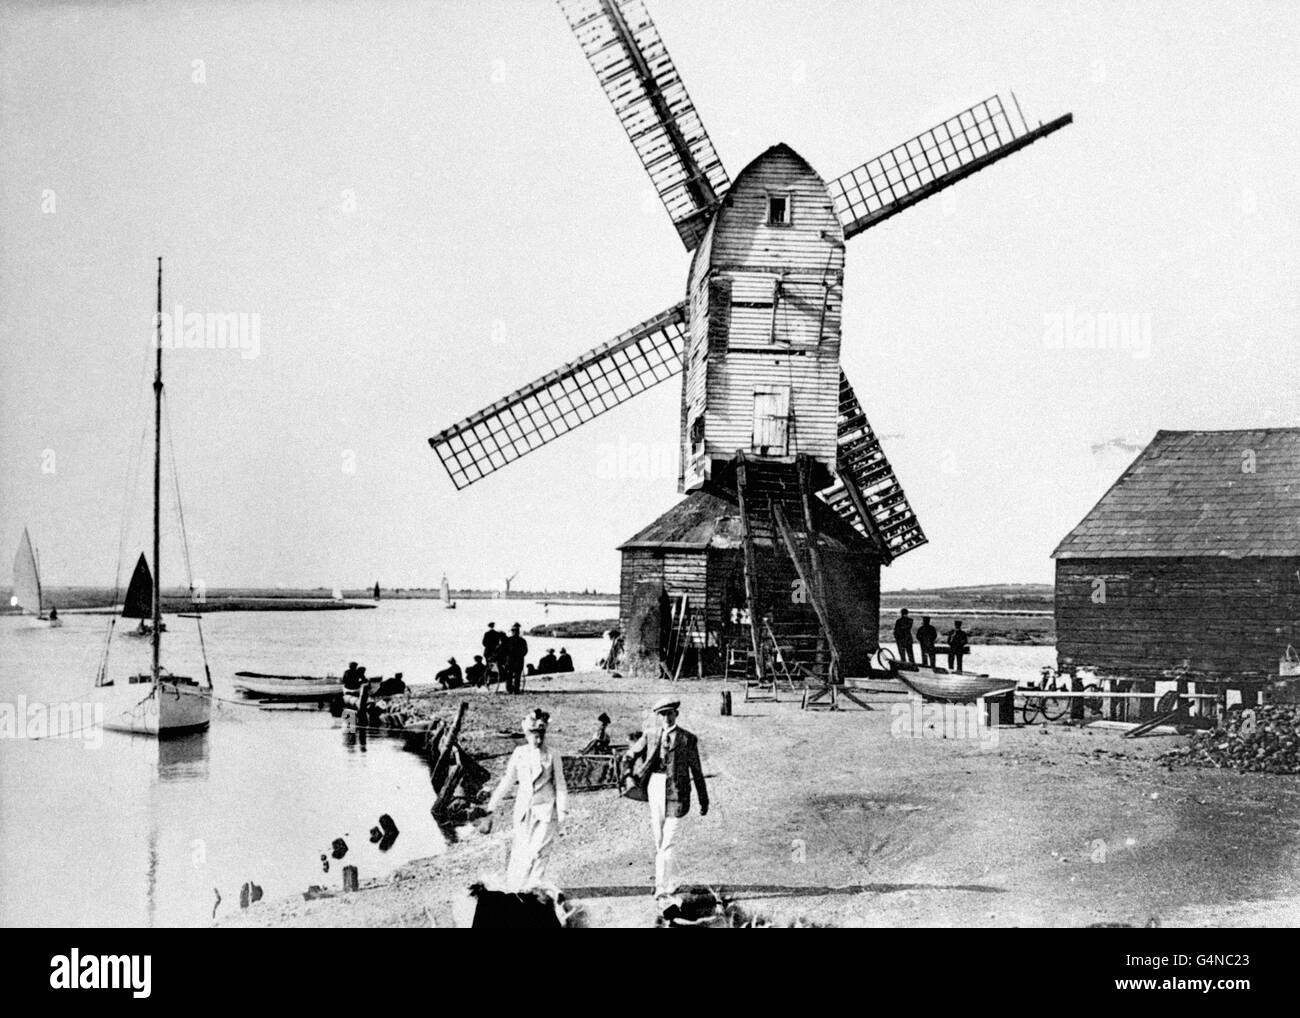 Buildings and Landmarks - Windmills - Walton-on-the-Naze - Stock Image